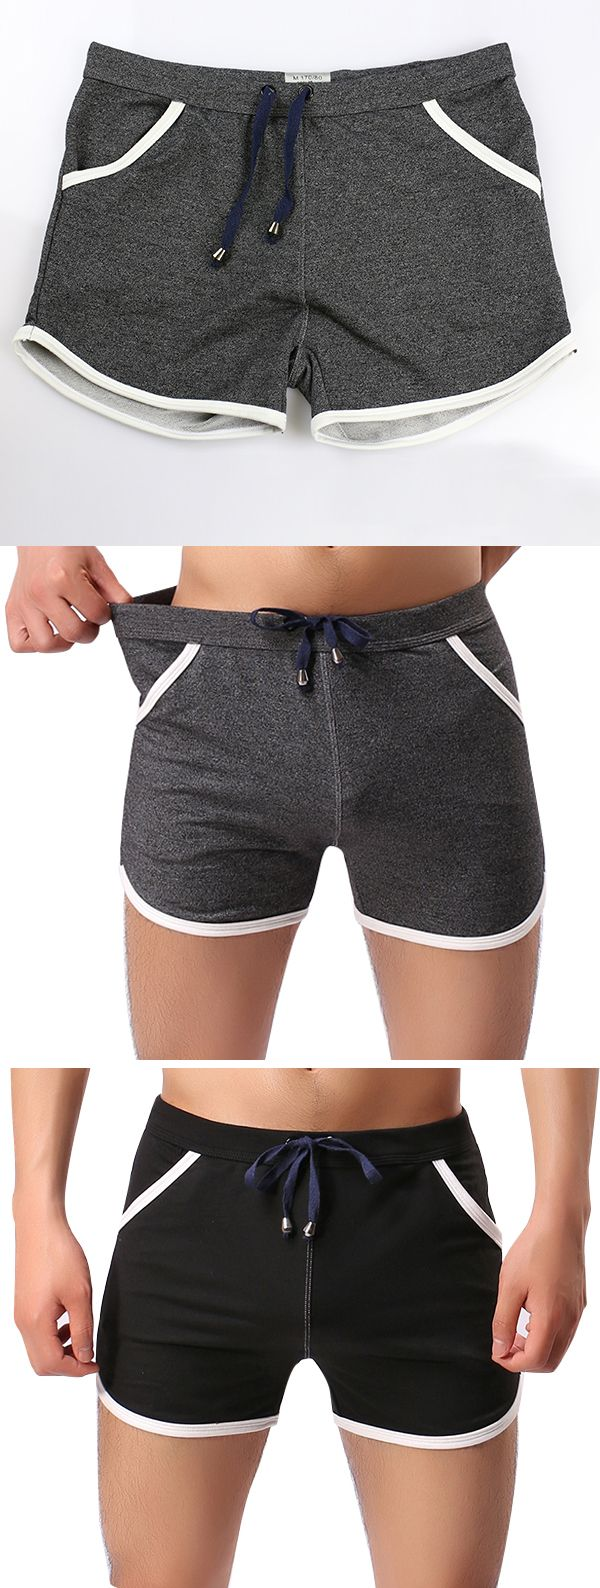 Casual Boxers Underwear for Men : Sexy Patchwork / Drawstring Cotton